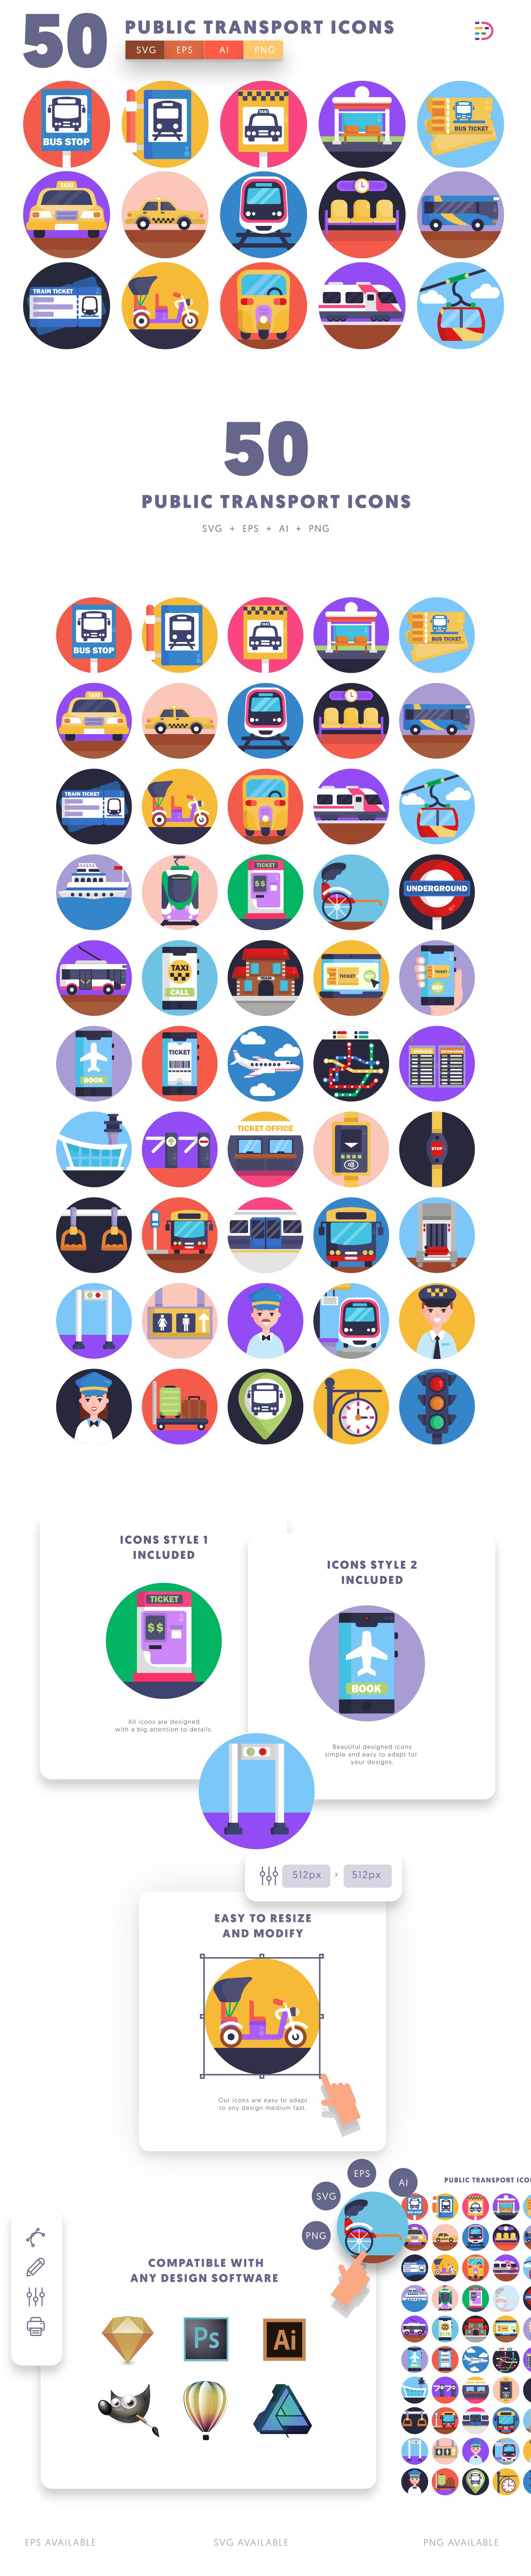 Public Transport icons info graphic